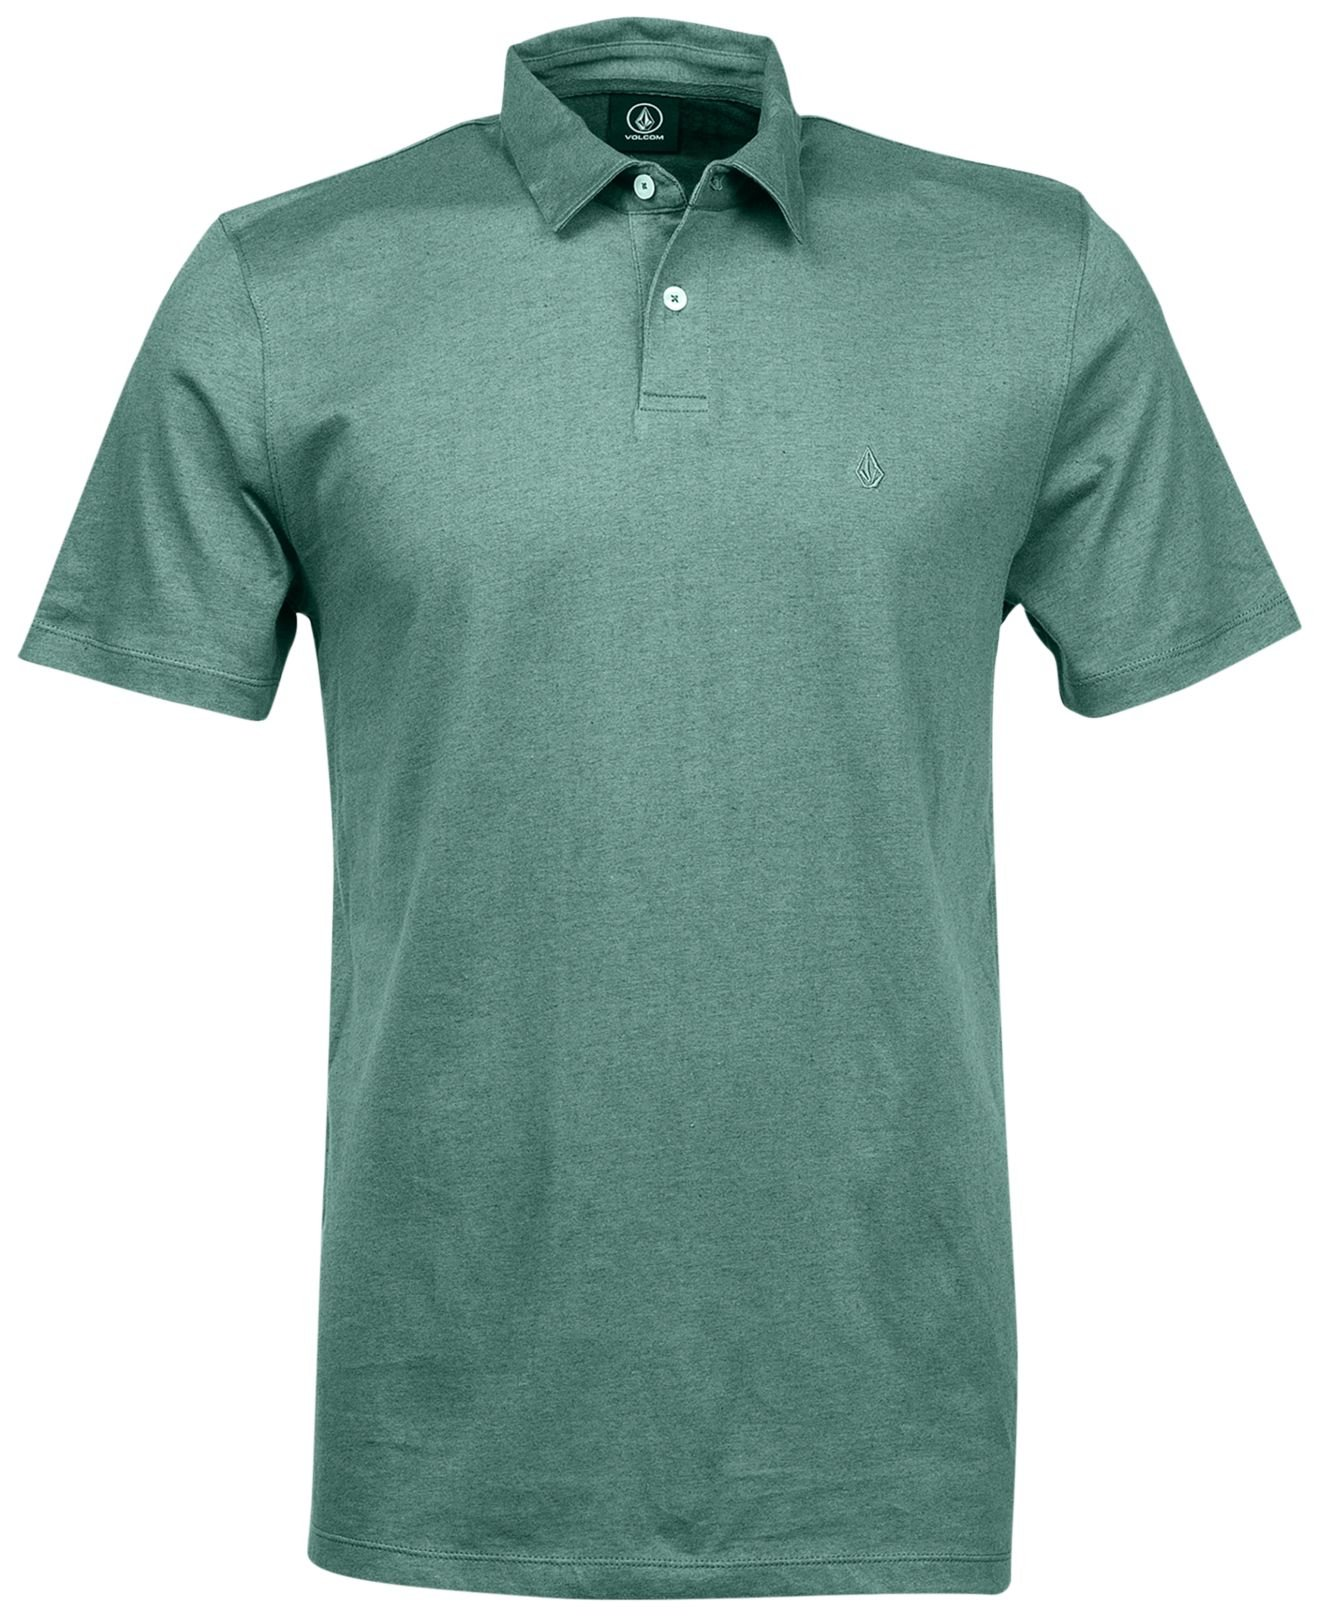 Volcom wowzer polo shirt in green for men forest lyst for Forest green polo shirts